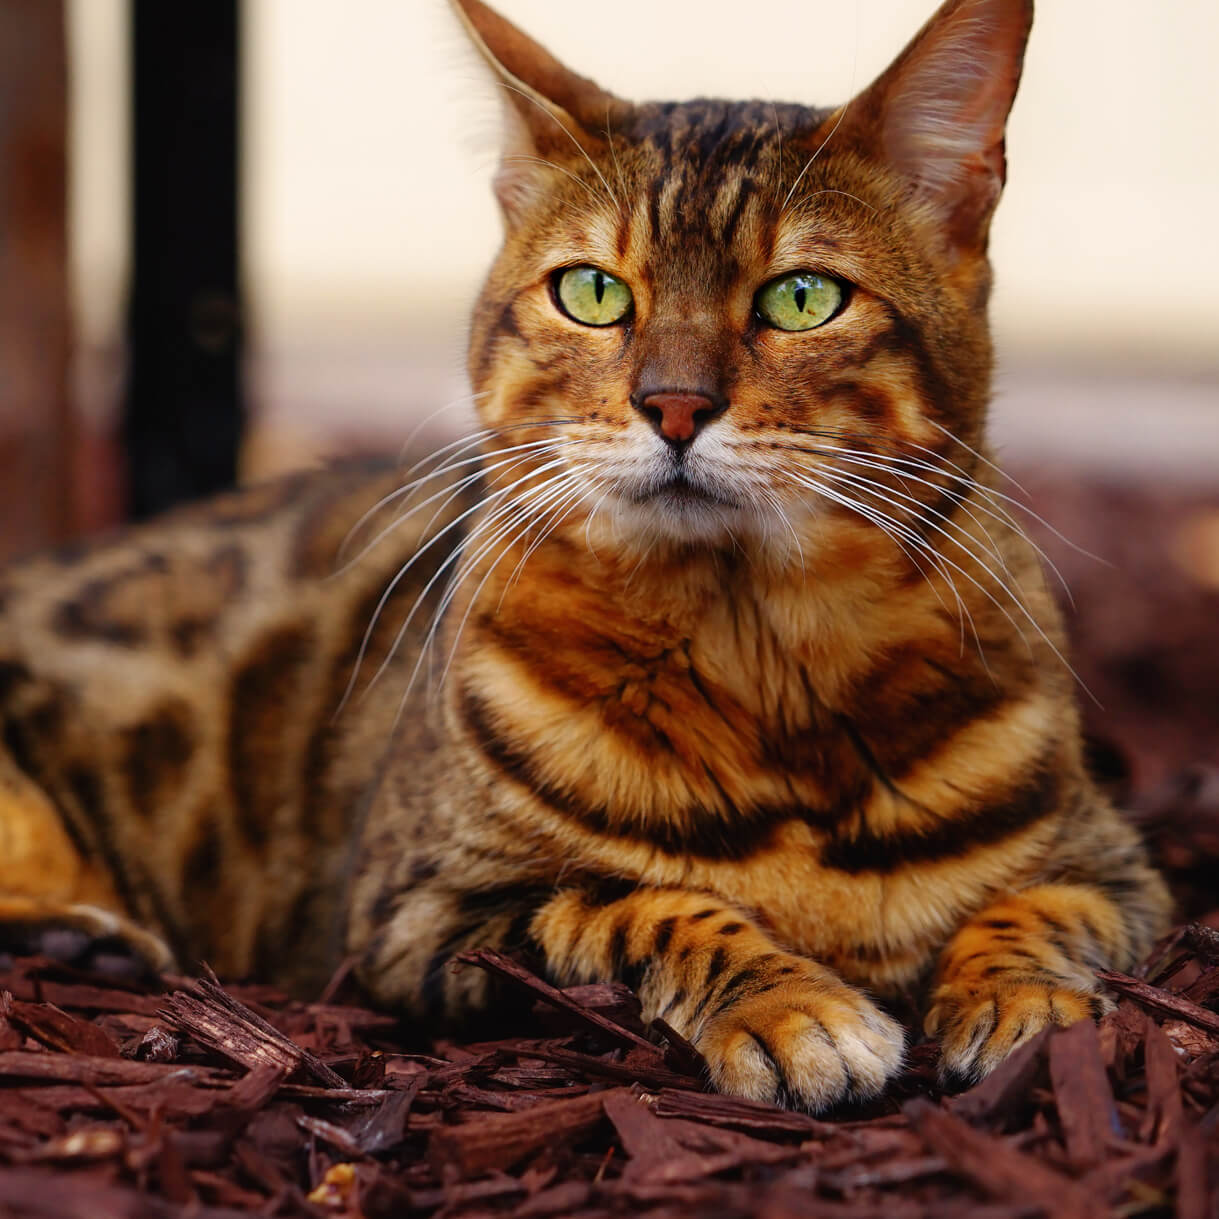 Bengal cat nose-whiskers